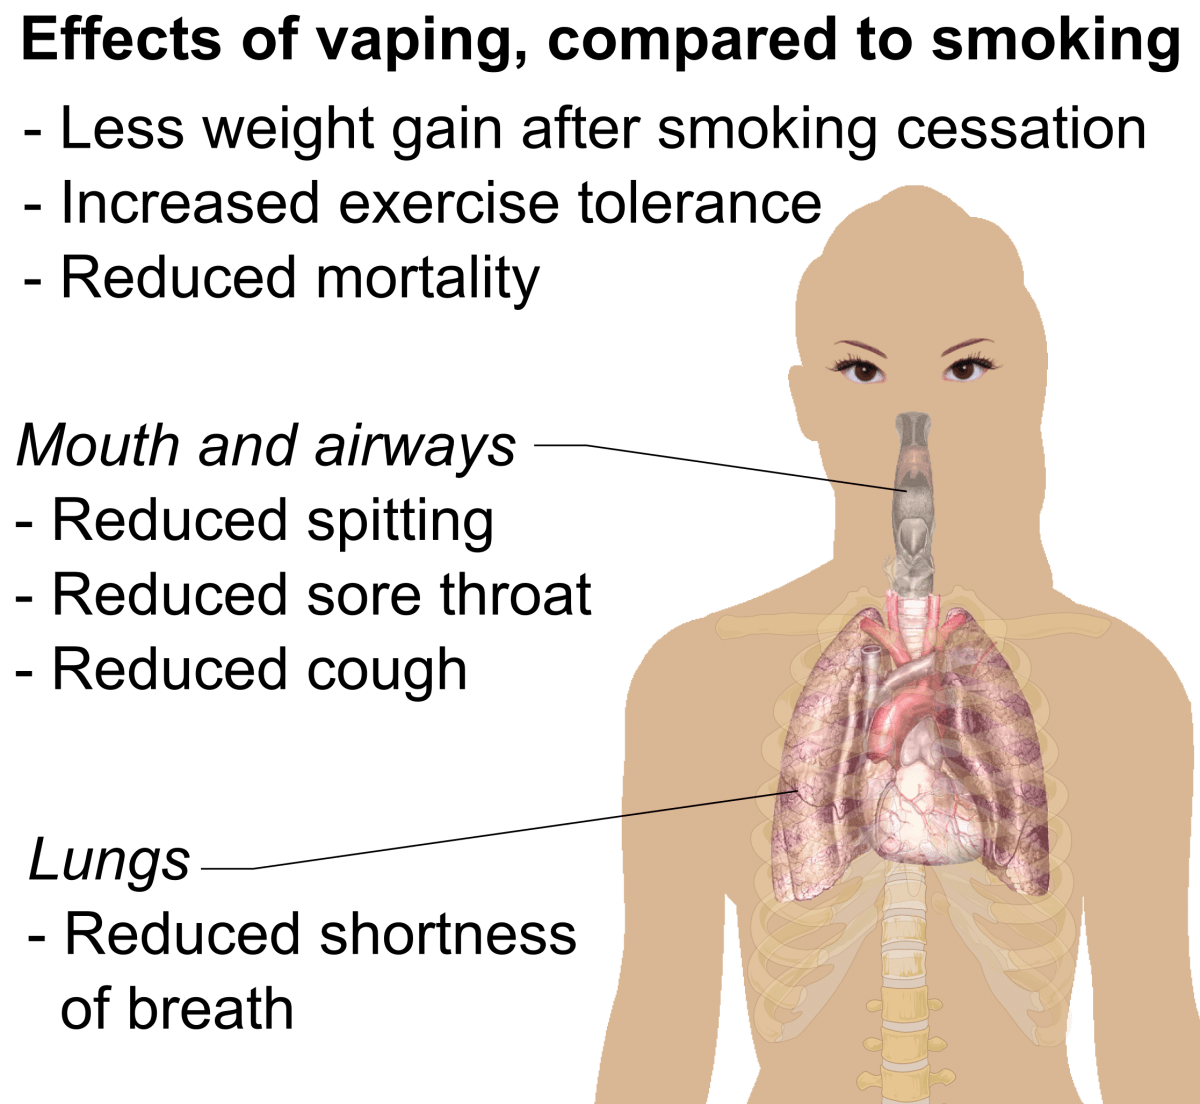 Smoking is not good for your health essay